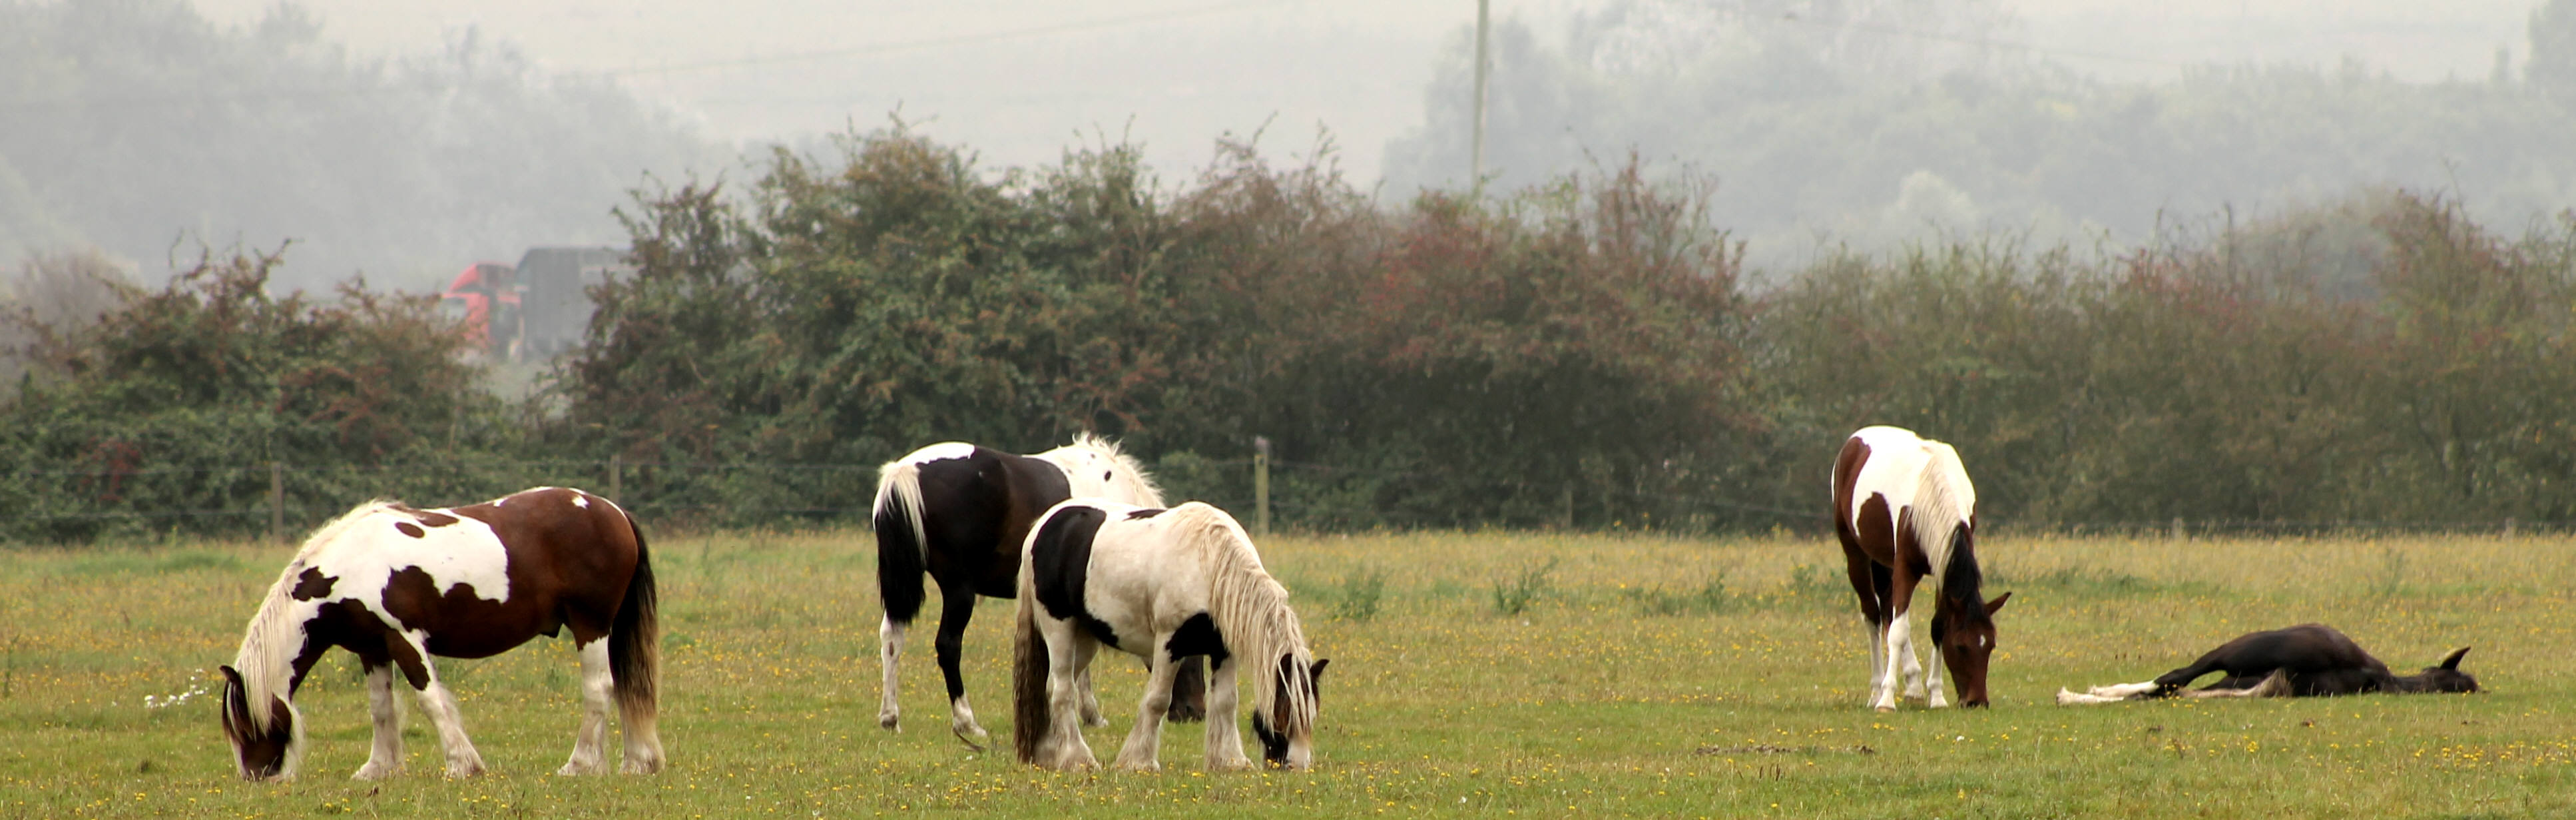 Jasper-with-the-Yearlings-Toni